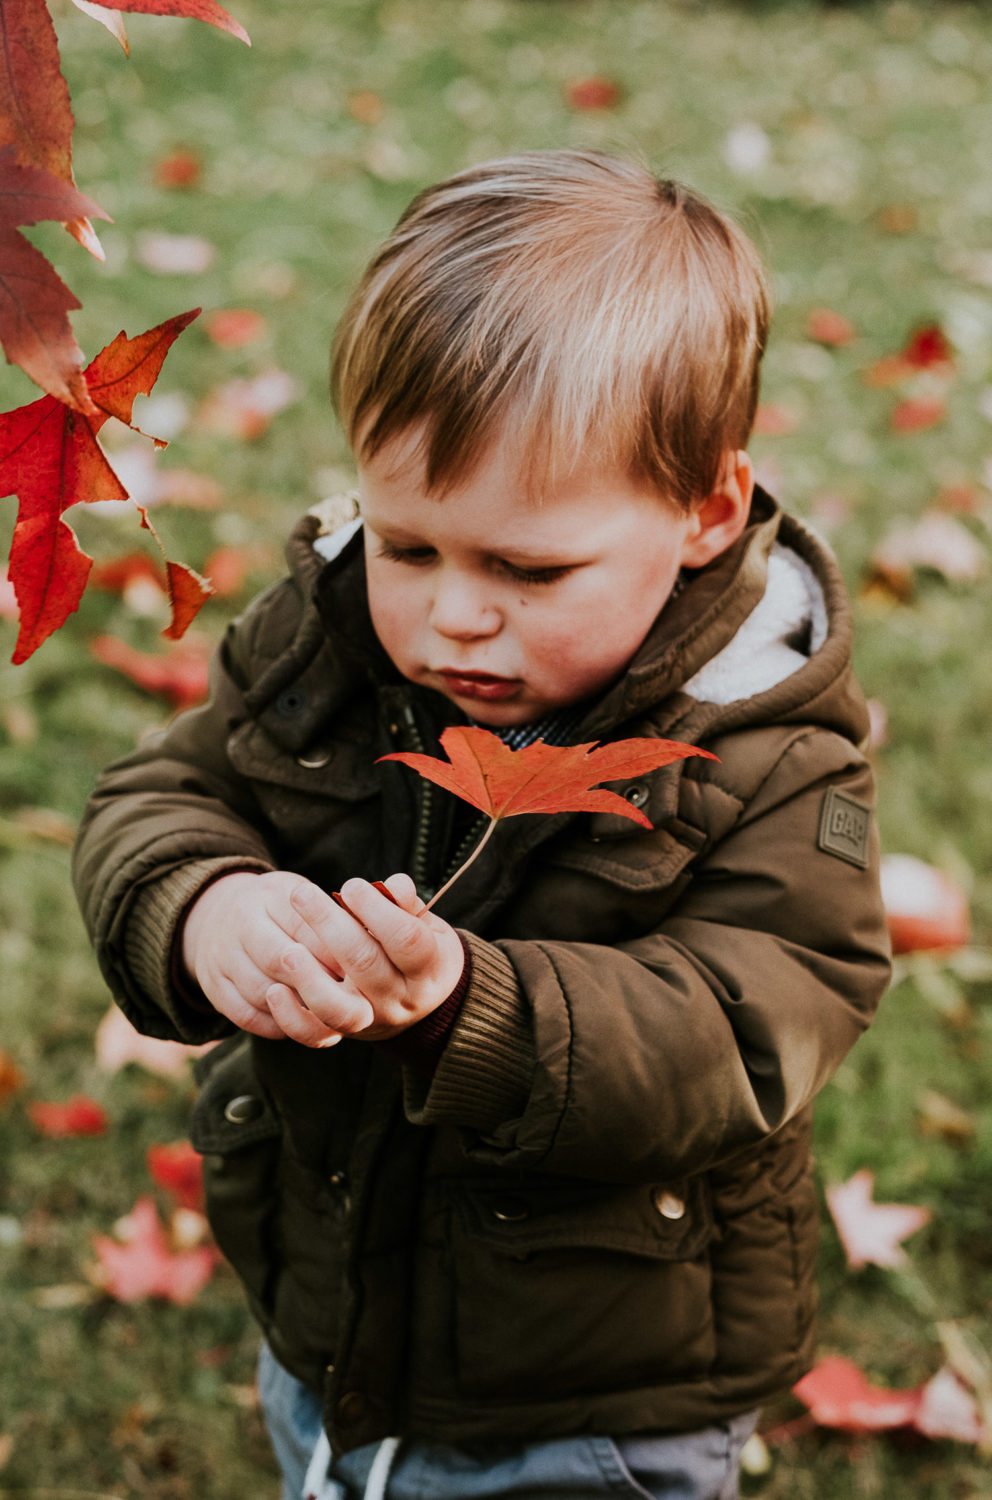 notting hill family photographer young boy in park with colourful red autumn leaves